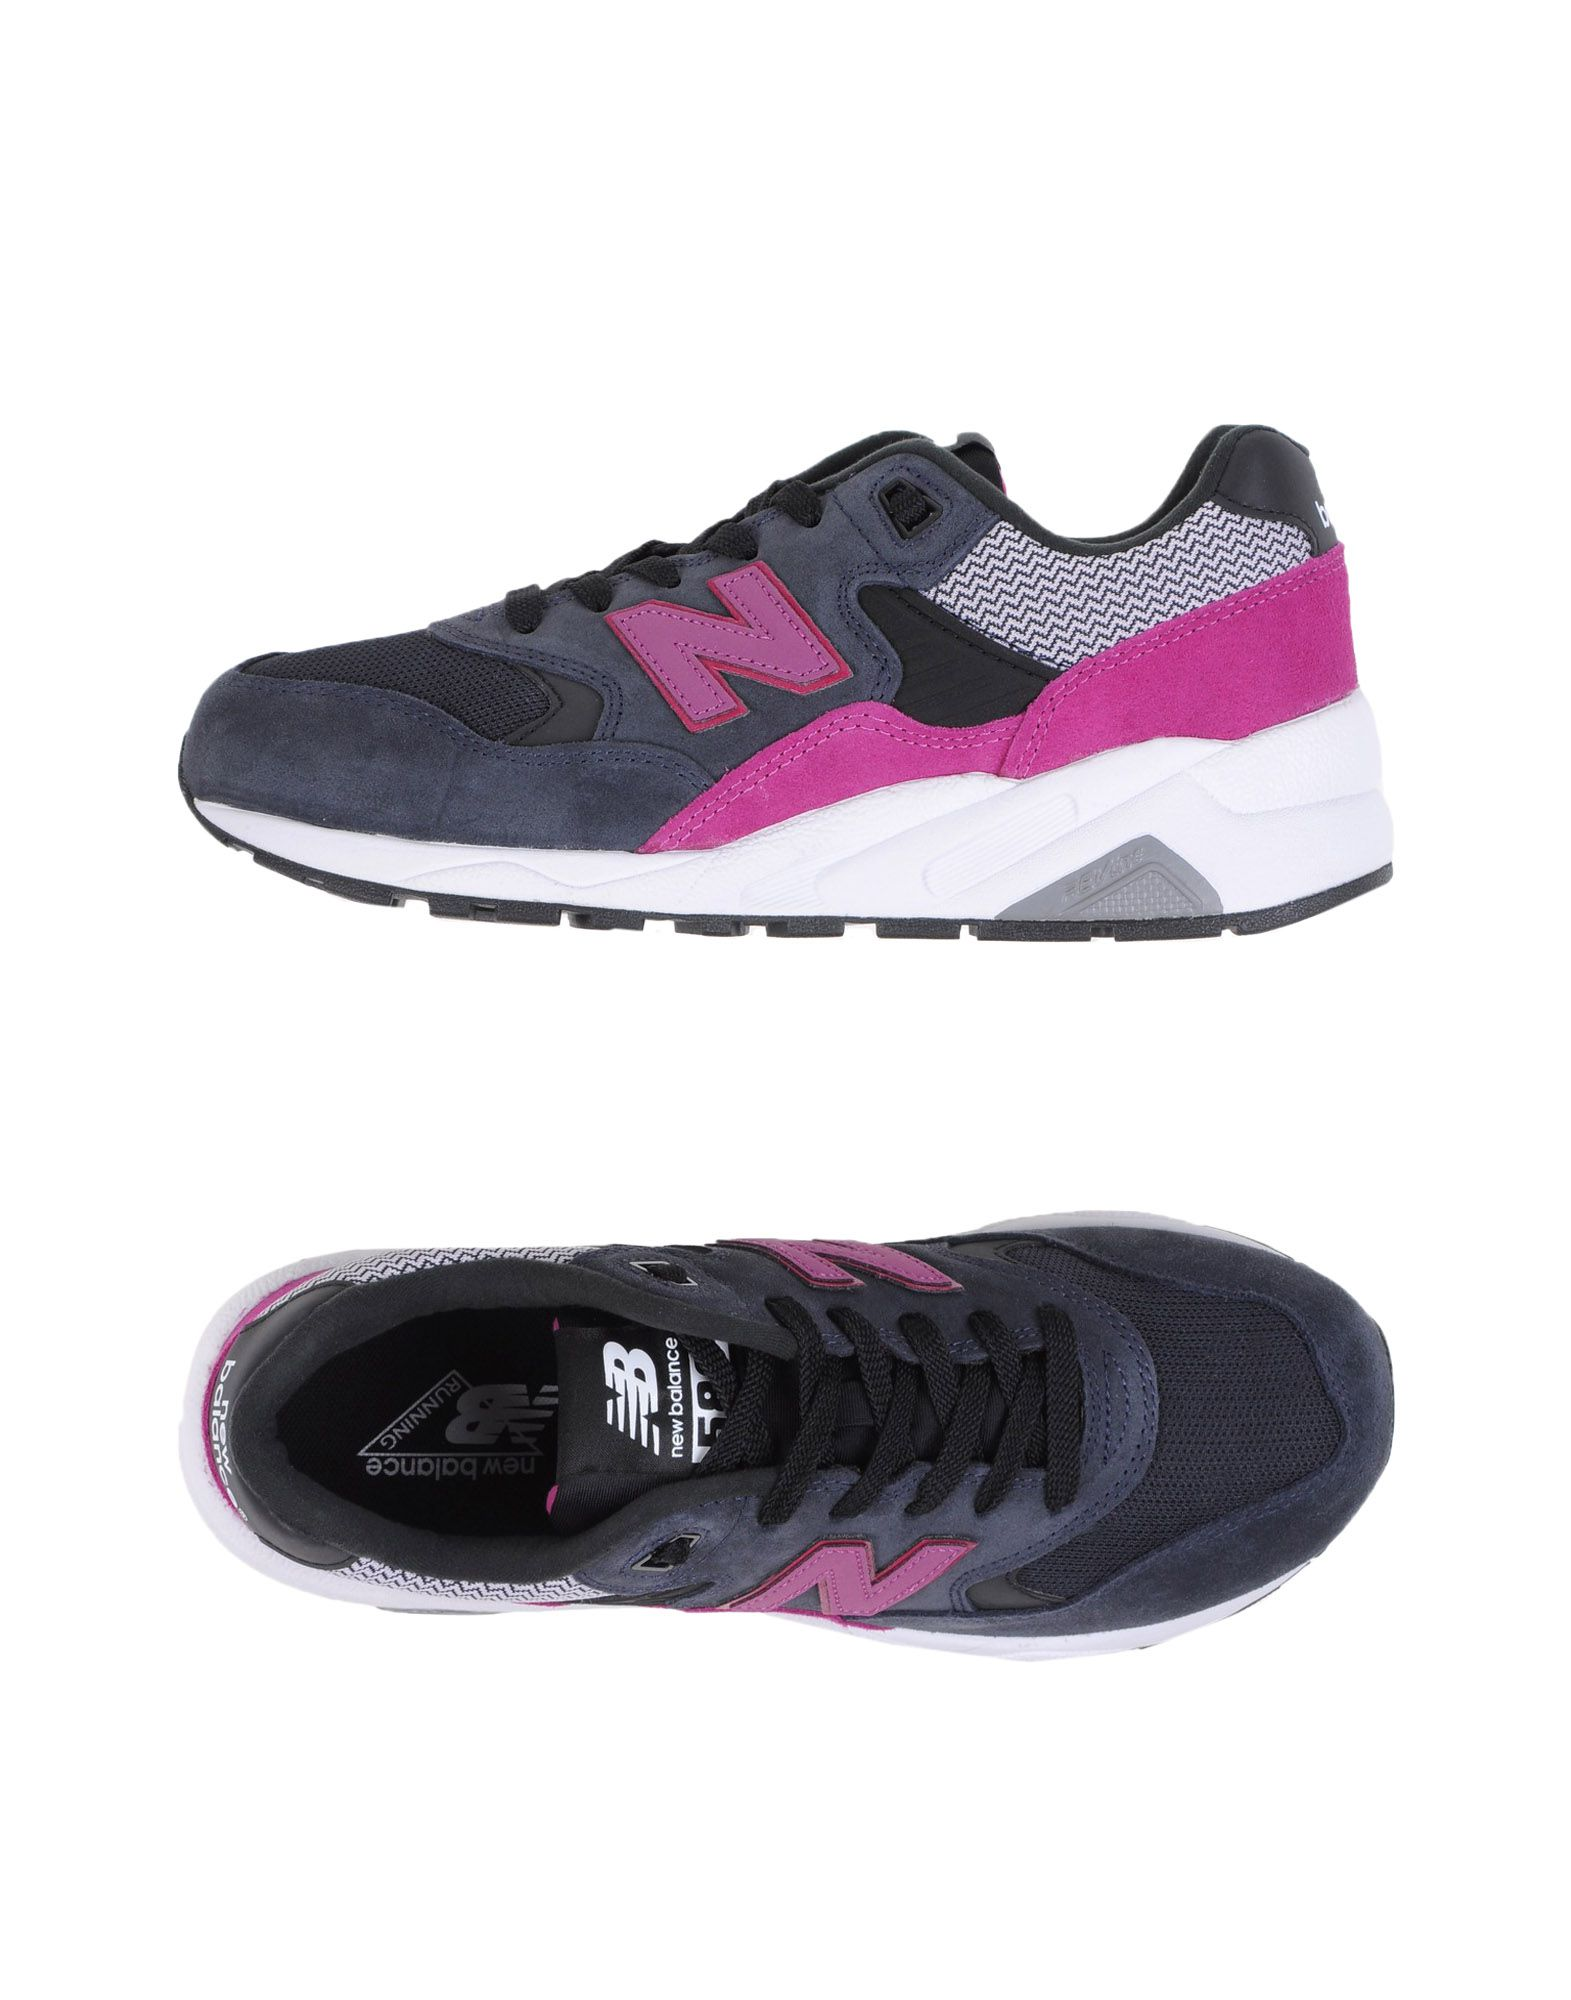 Baskets New Balance 580 Womens Wanderlust - Femme - Baskets New Balance Anthracite Chaussures casual sauvages